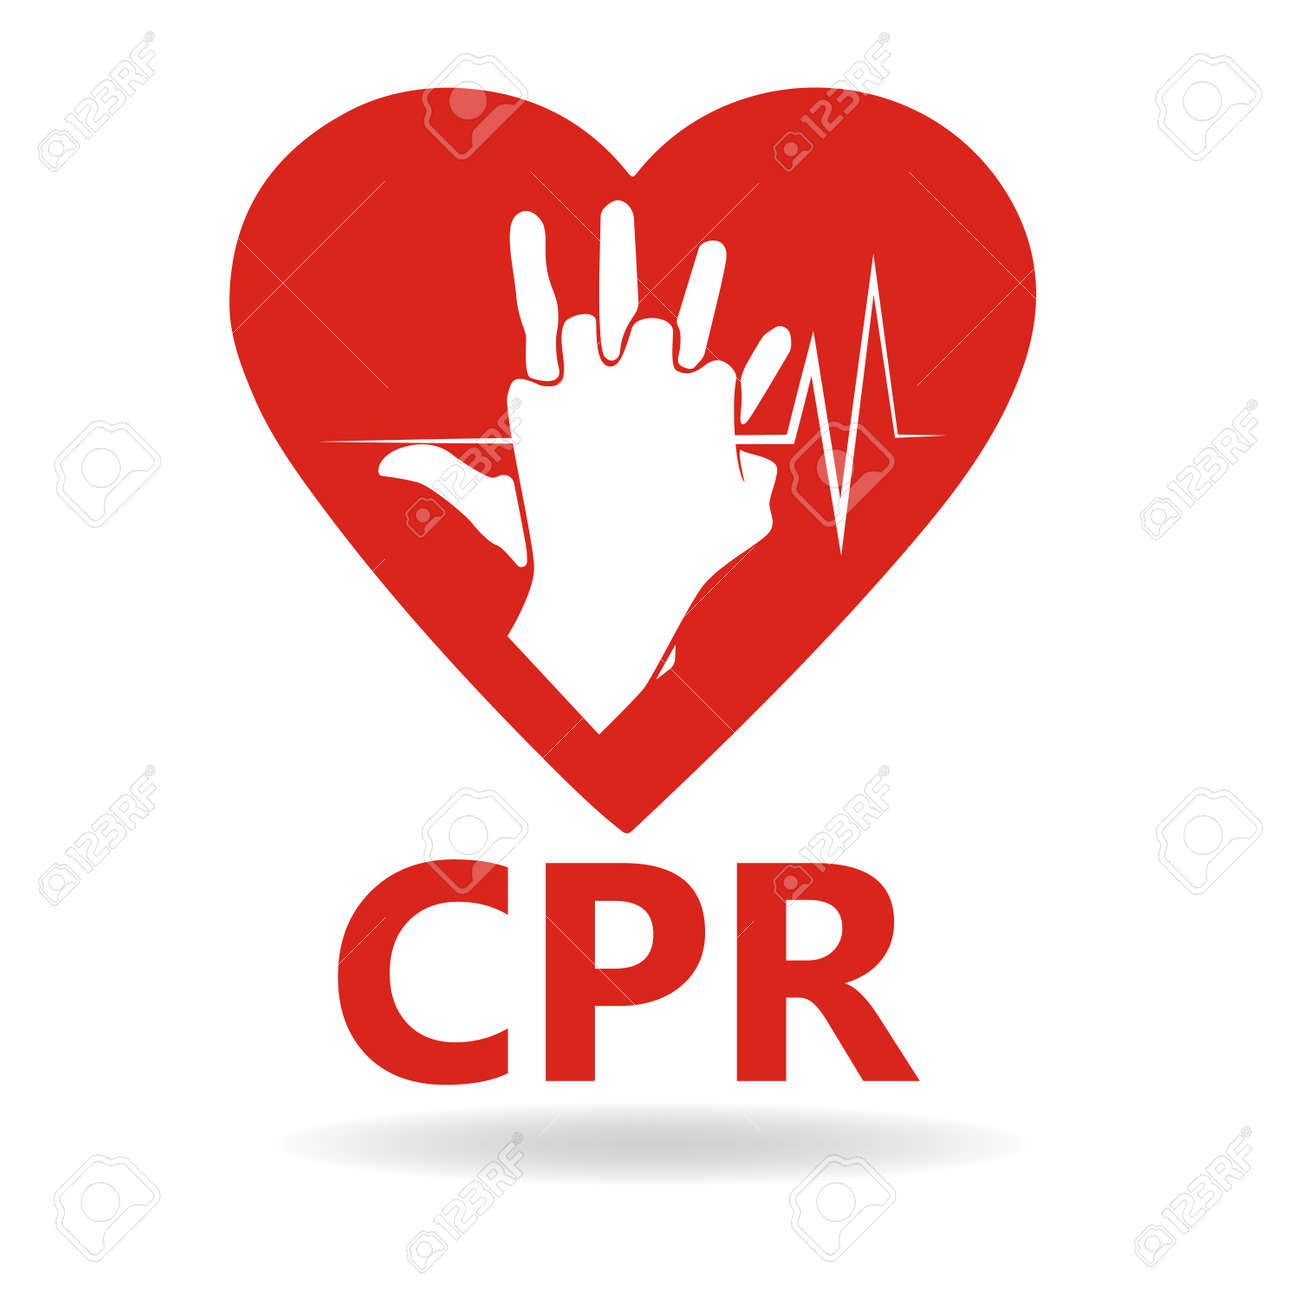 CPR logo. Medical resuscitation Vector clipart icon image isolated on white background design illustration - 136126188